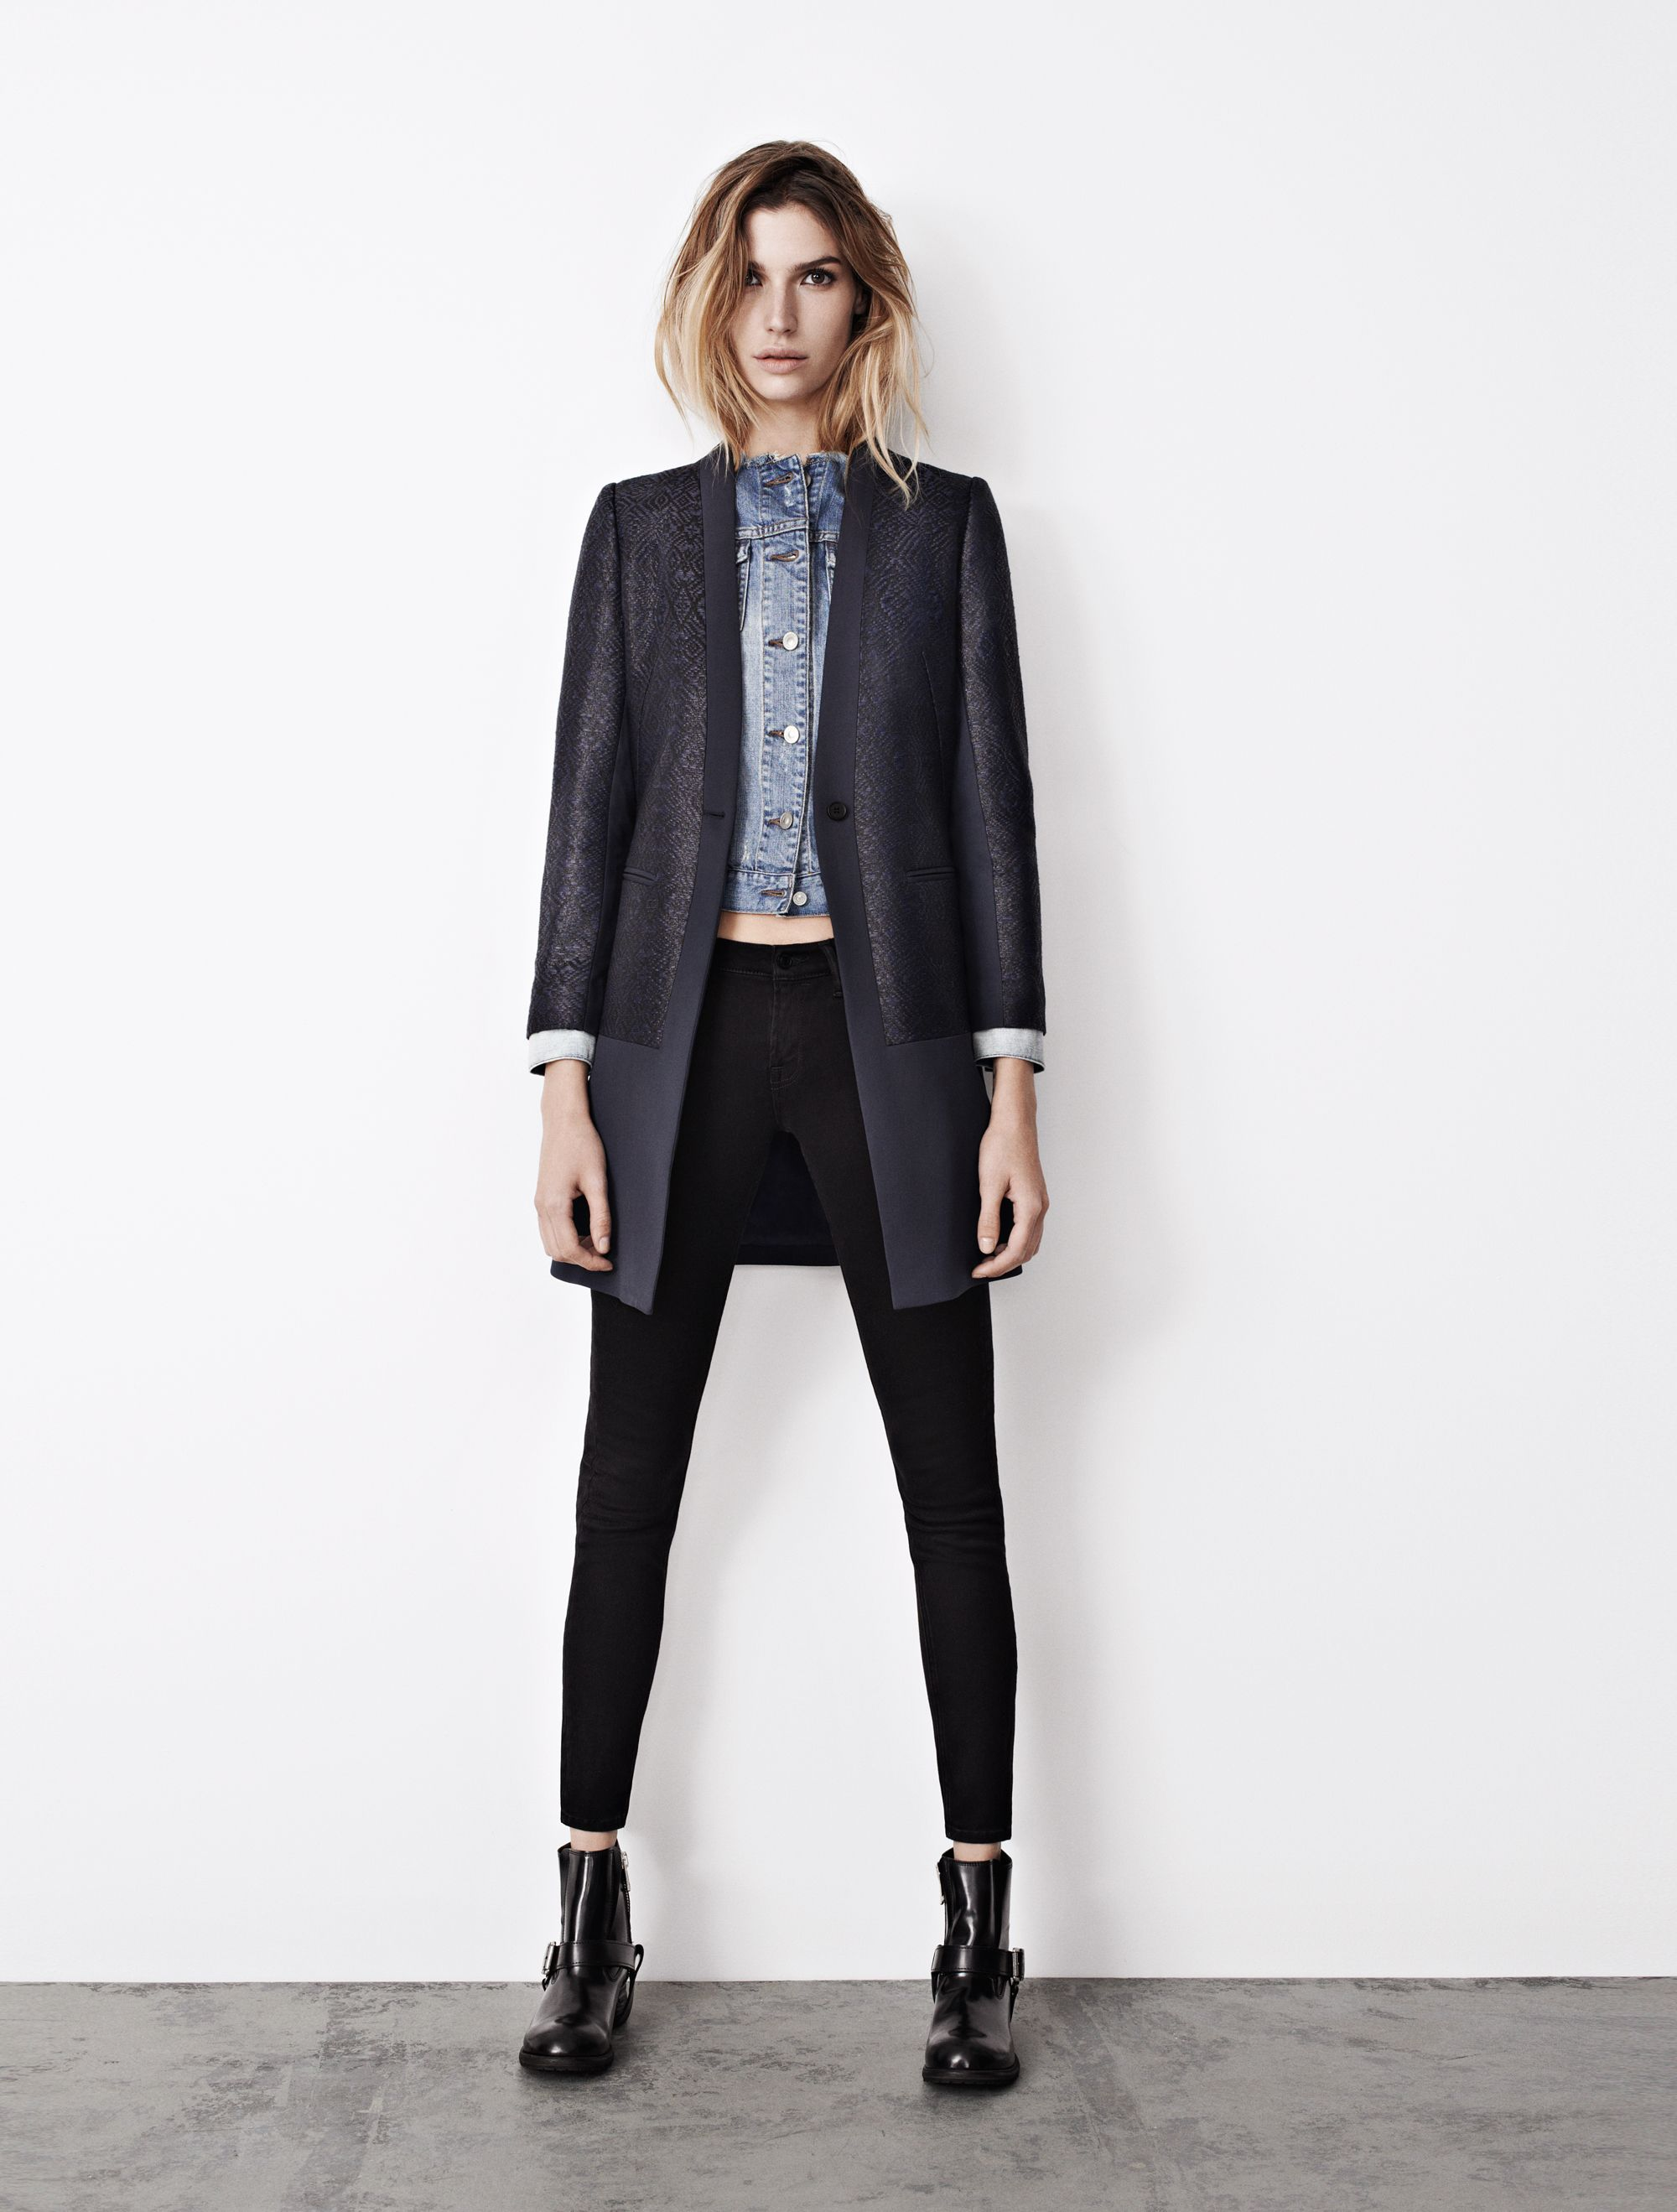 outfit by allsaints